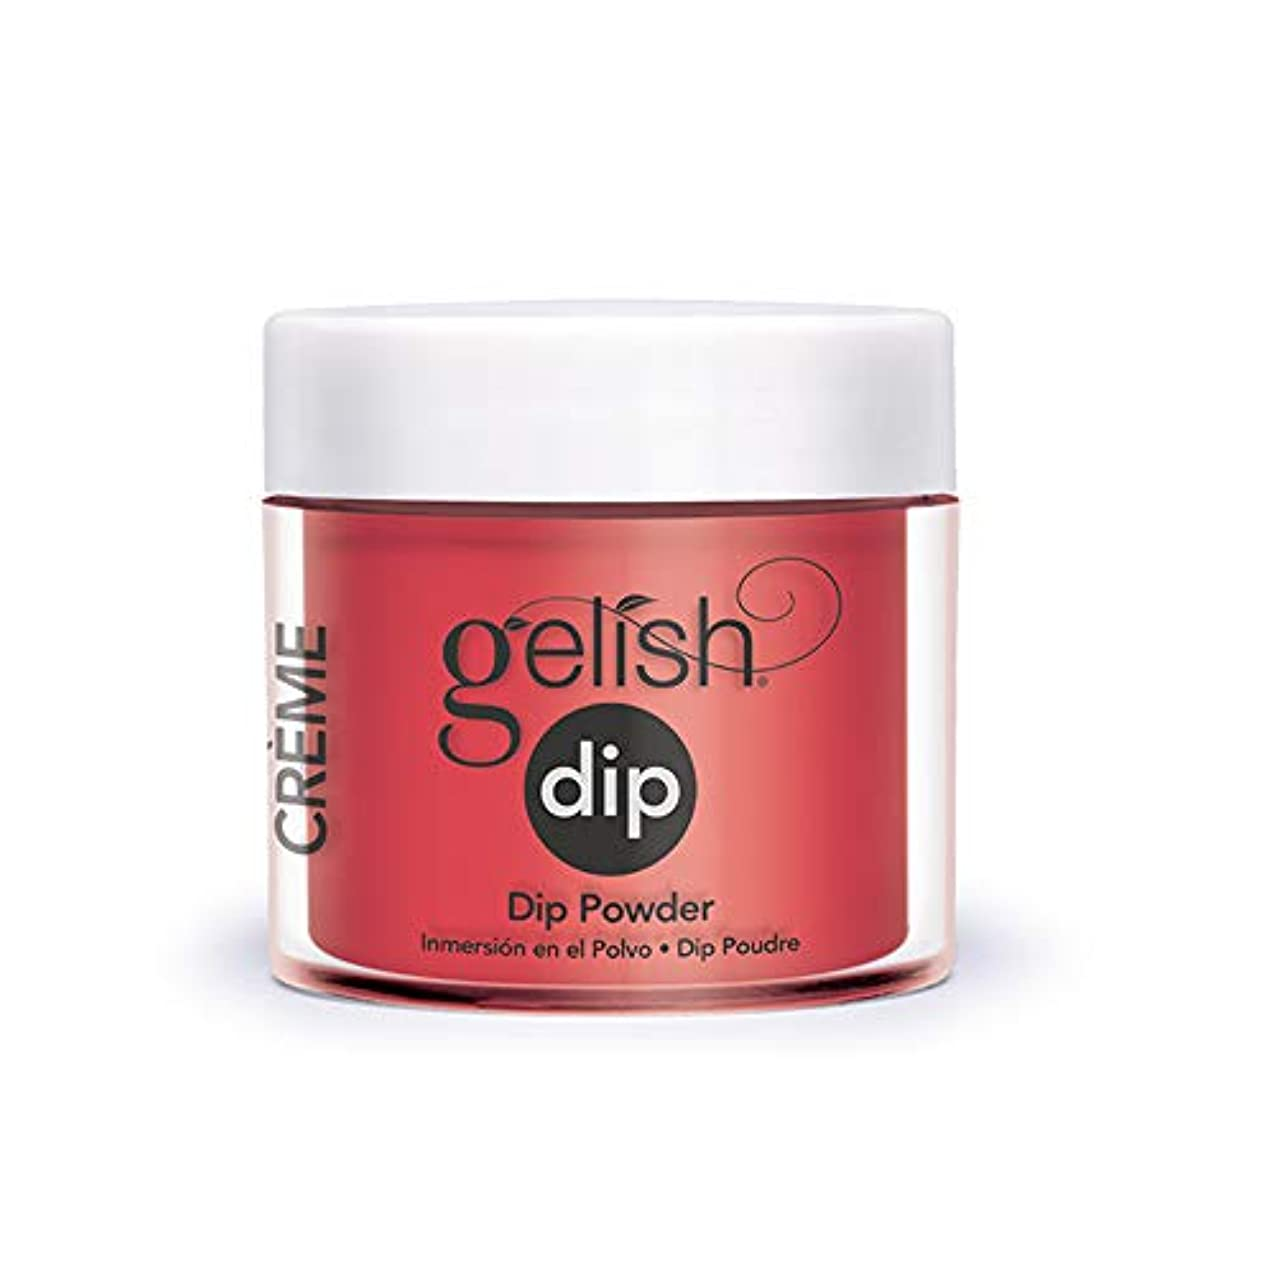 浮く滑りやすいキリンHarmony Gelish - Acrylic Dip Powder - Scandalous - 23g / 0.8oz